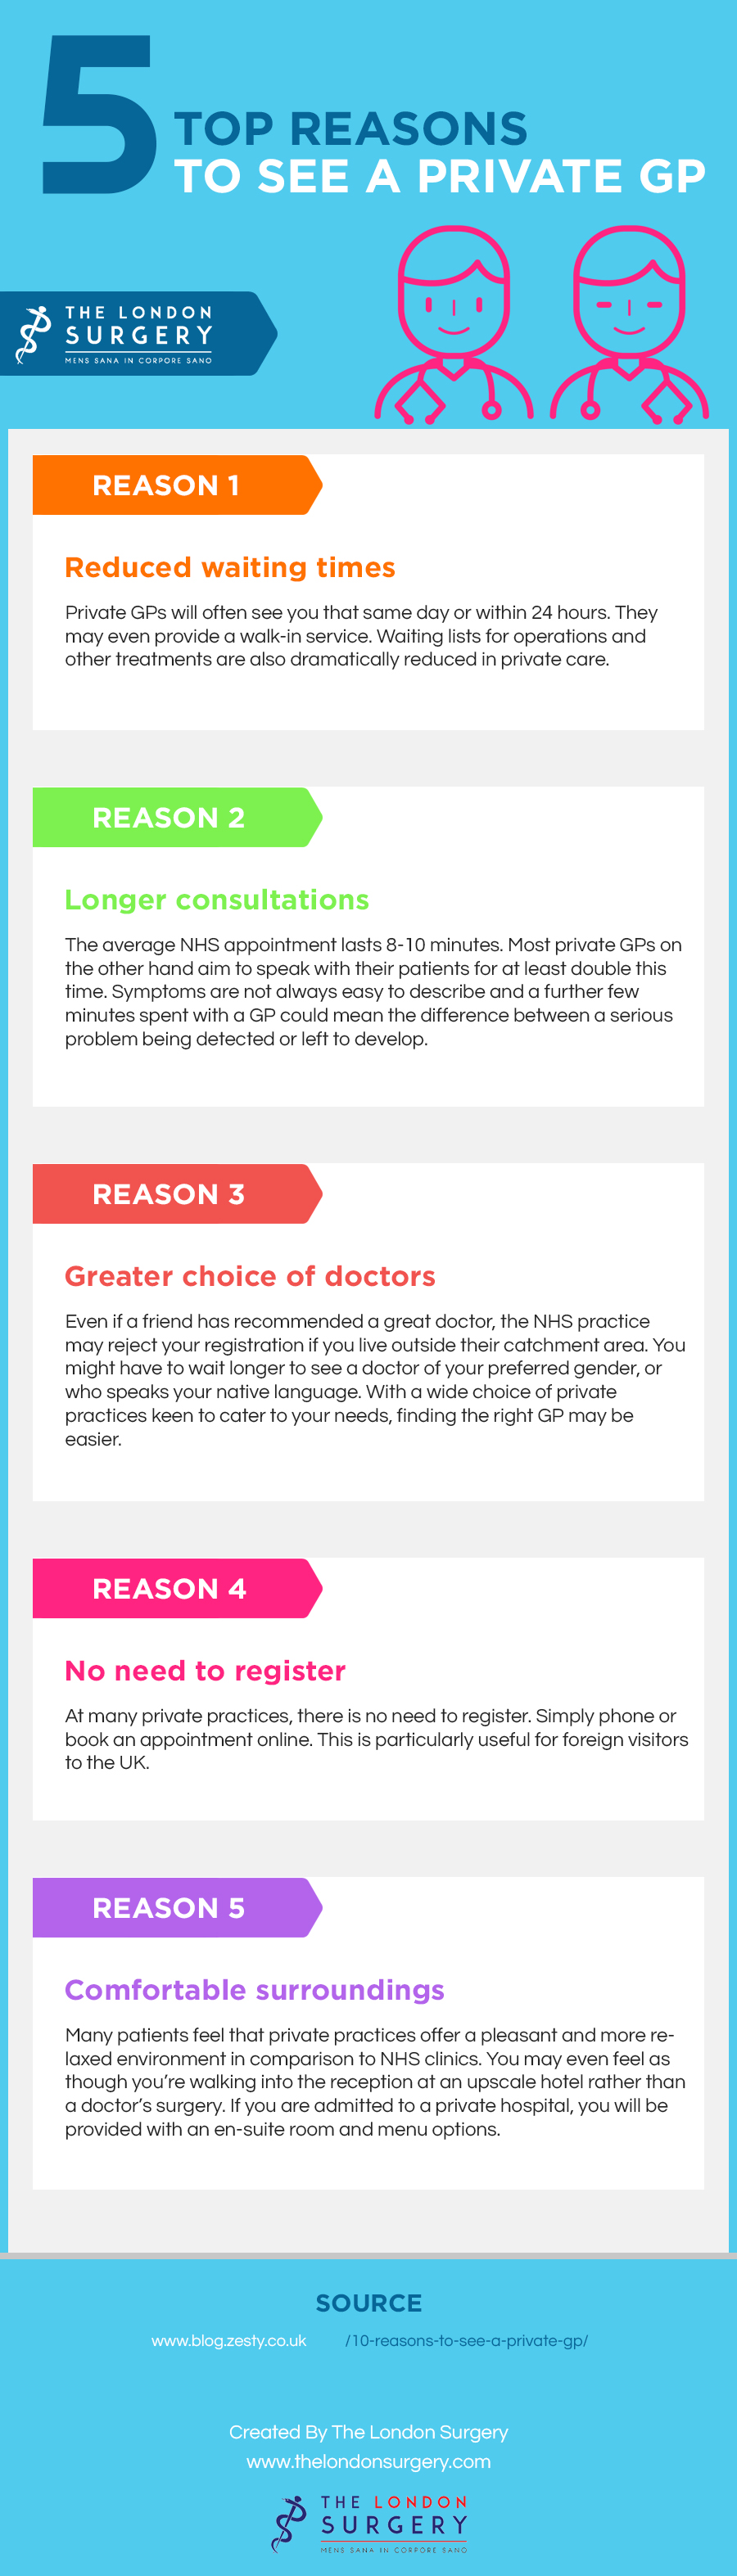 5 Top Reasons To See A Private GP